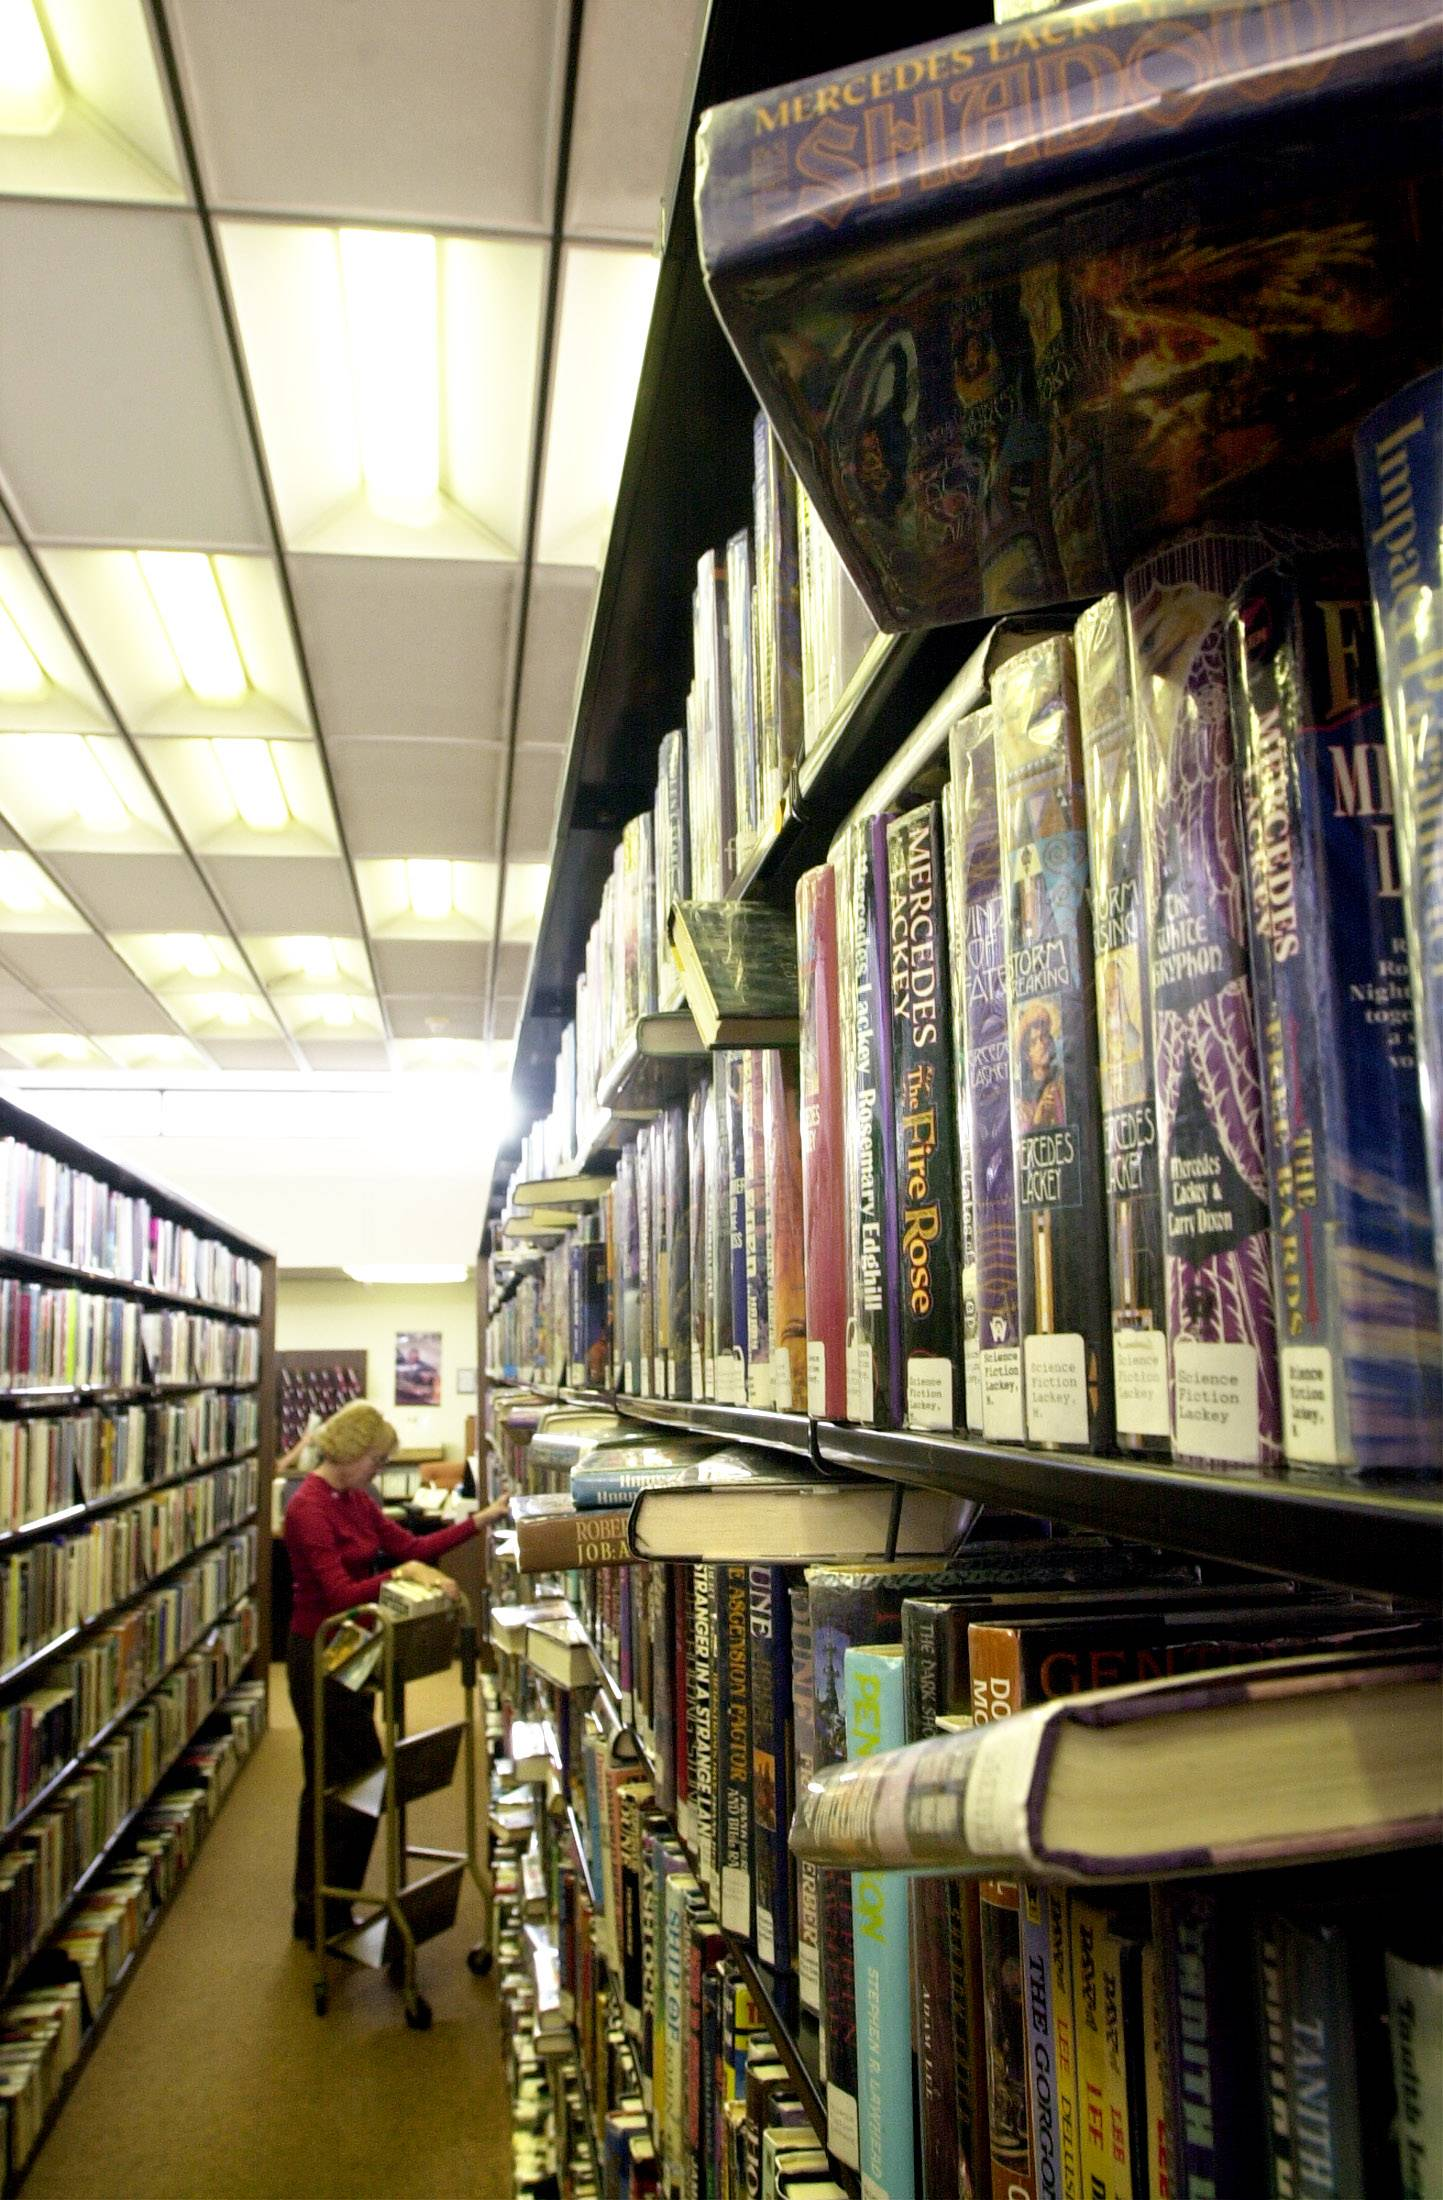 Survey planned for Cook Memorial library patrons